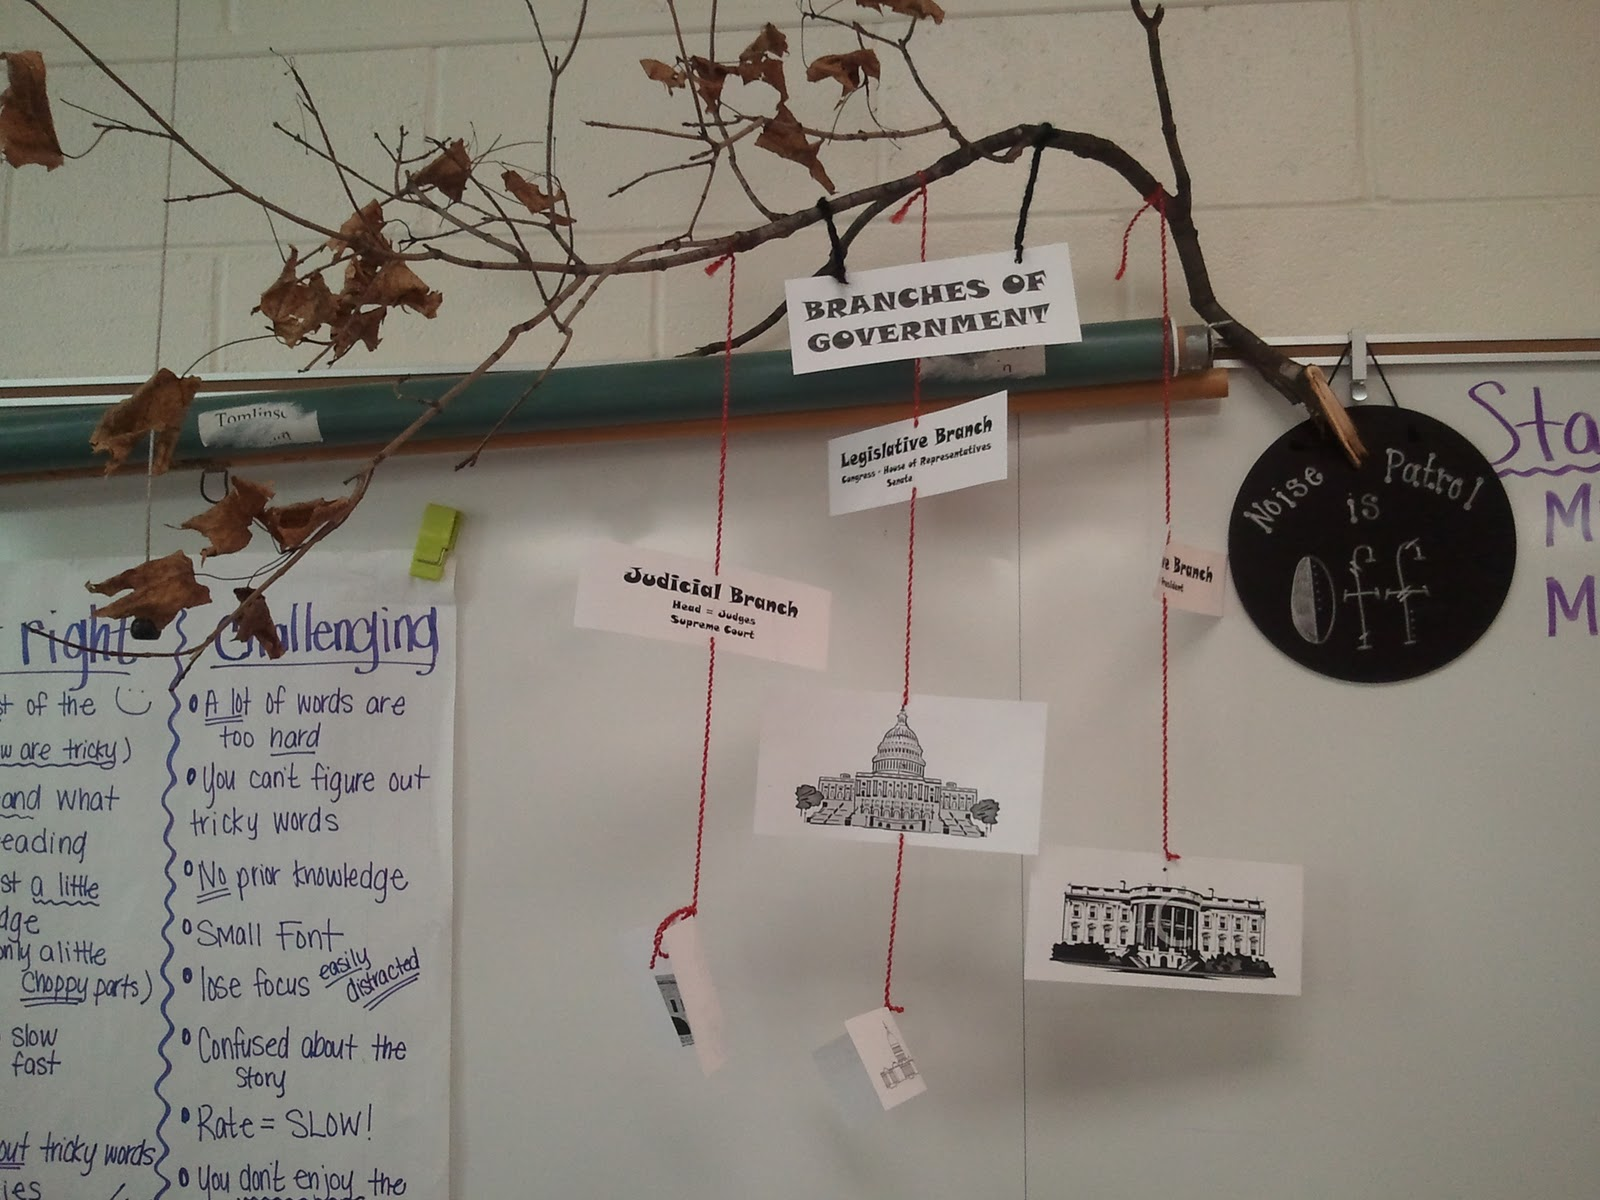 the ART of learning: Branches of Government